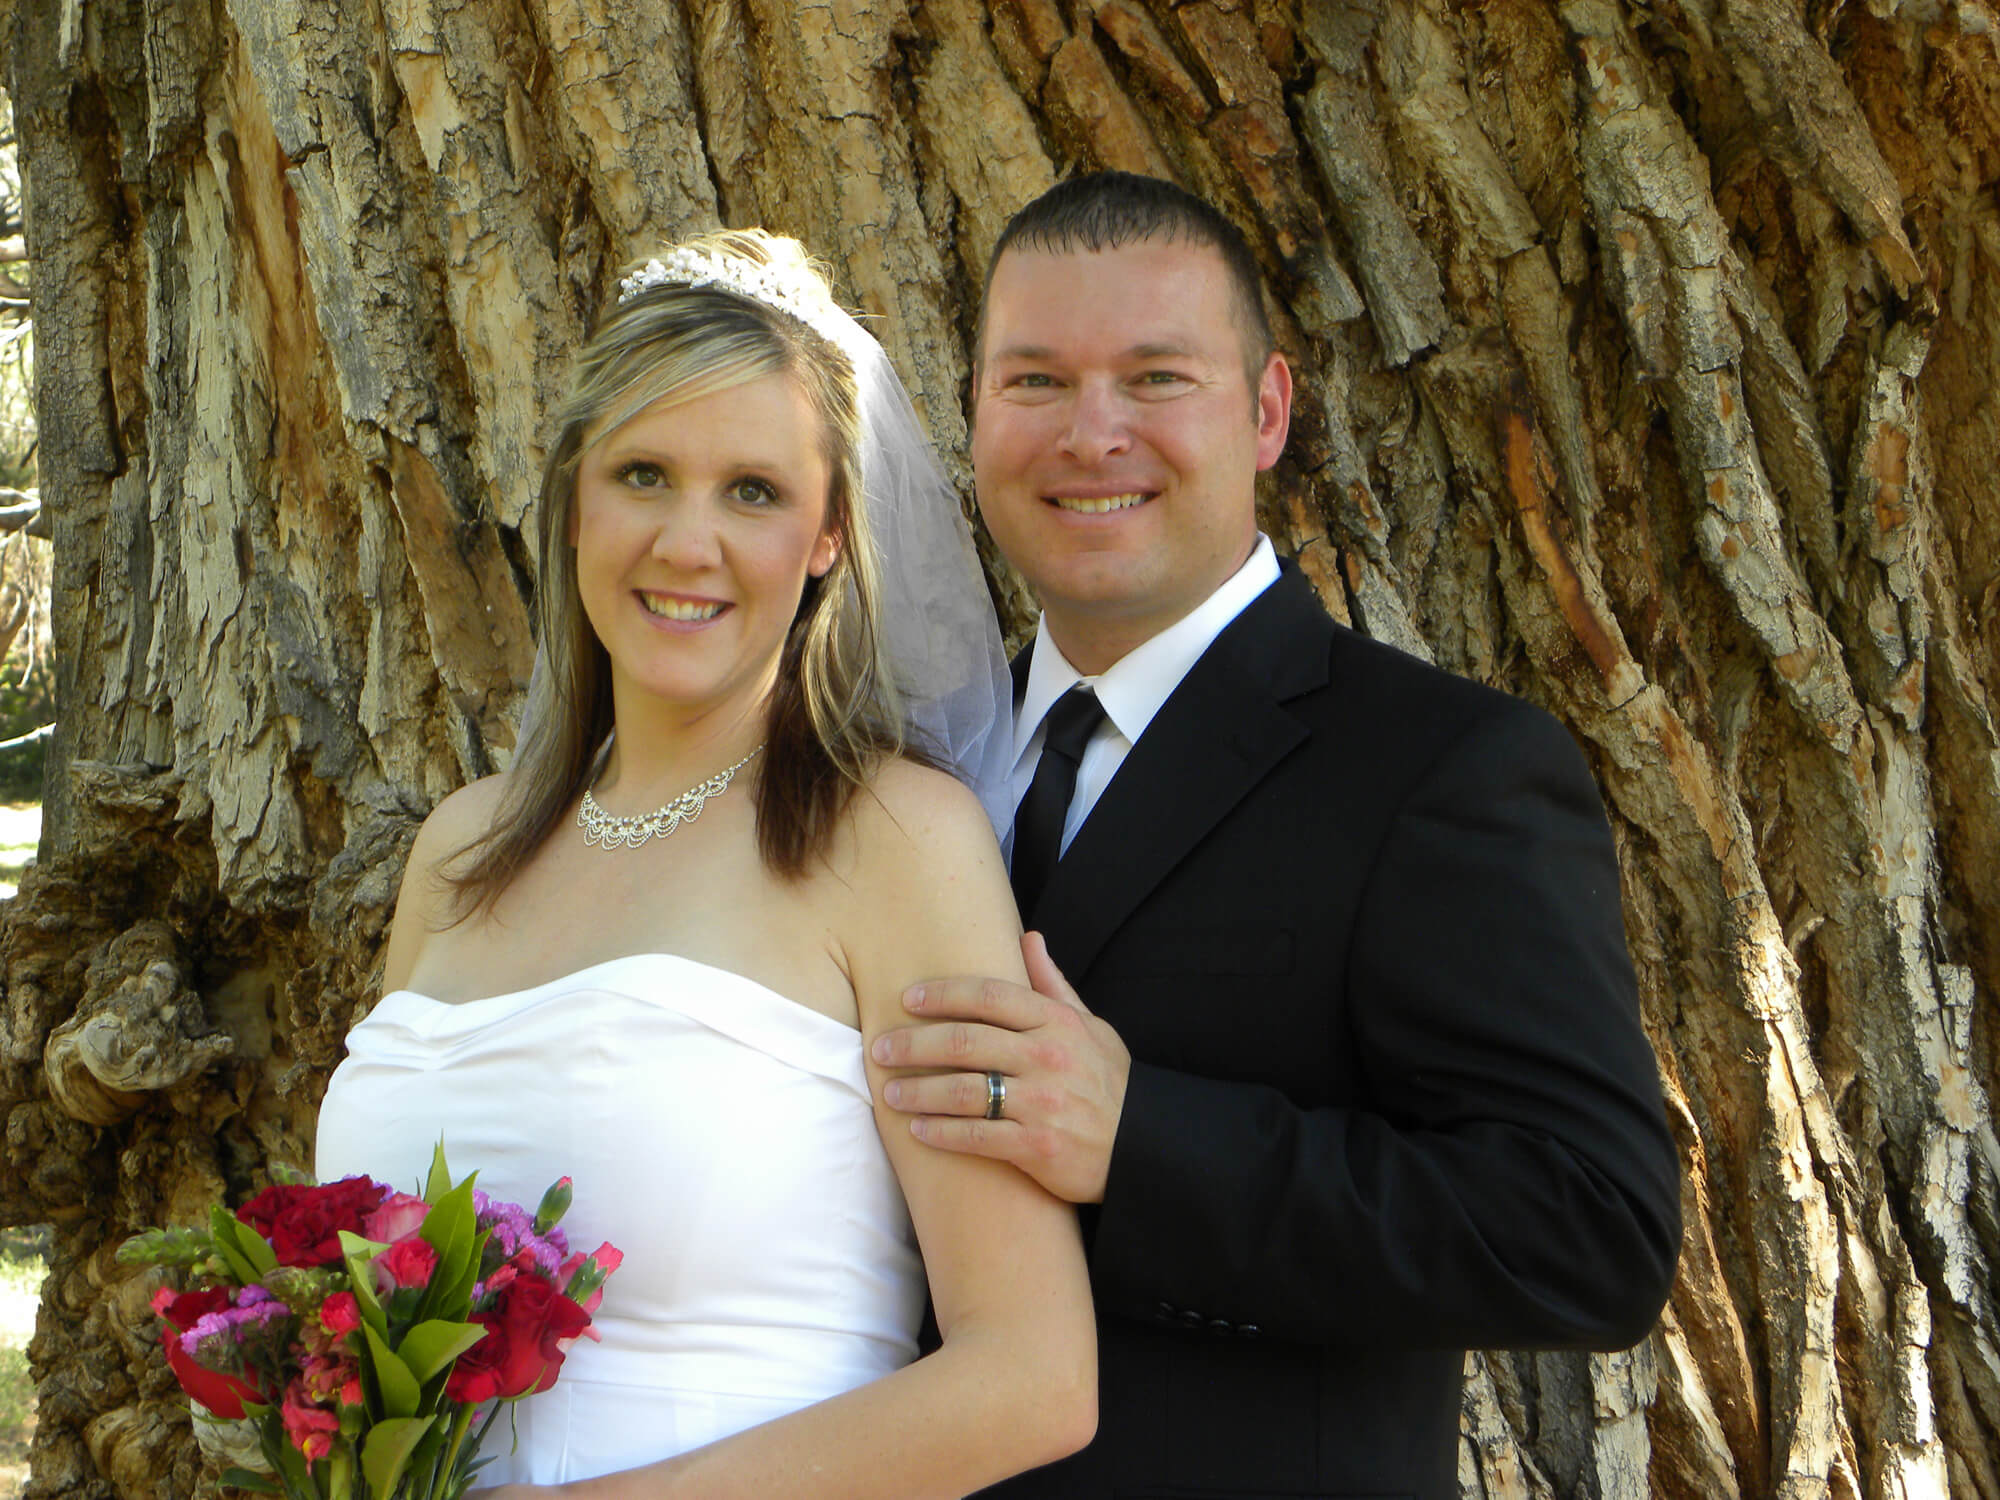 Newly married couple in front of the Wedding Tree in Sedona